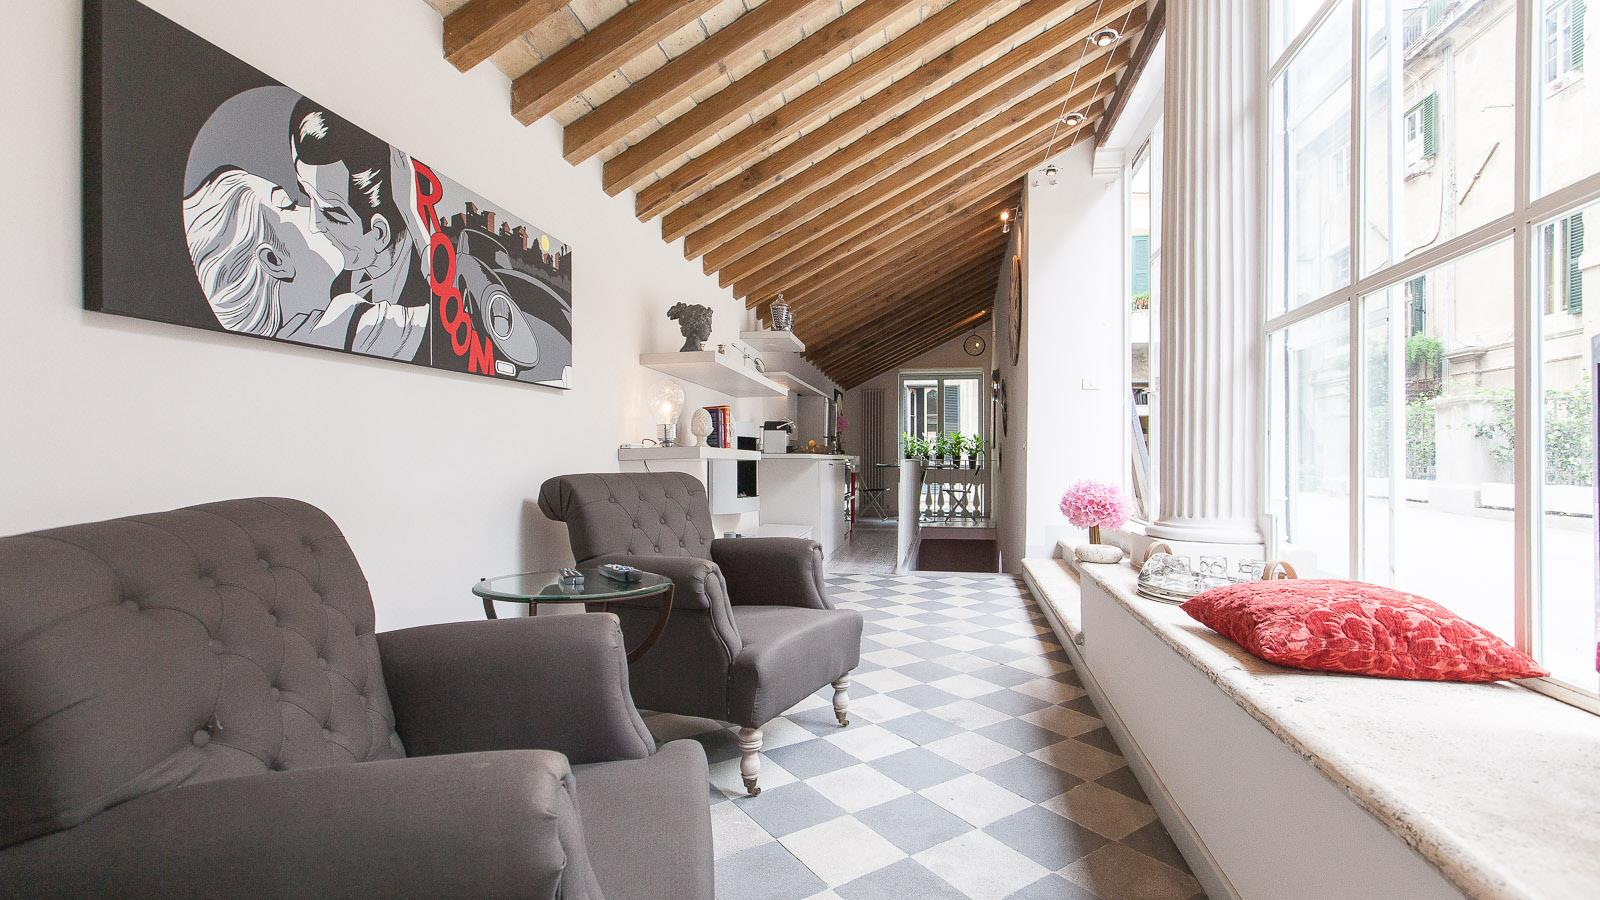 Holiday Apartments For Rent In Rome Rentalinrome Com